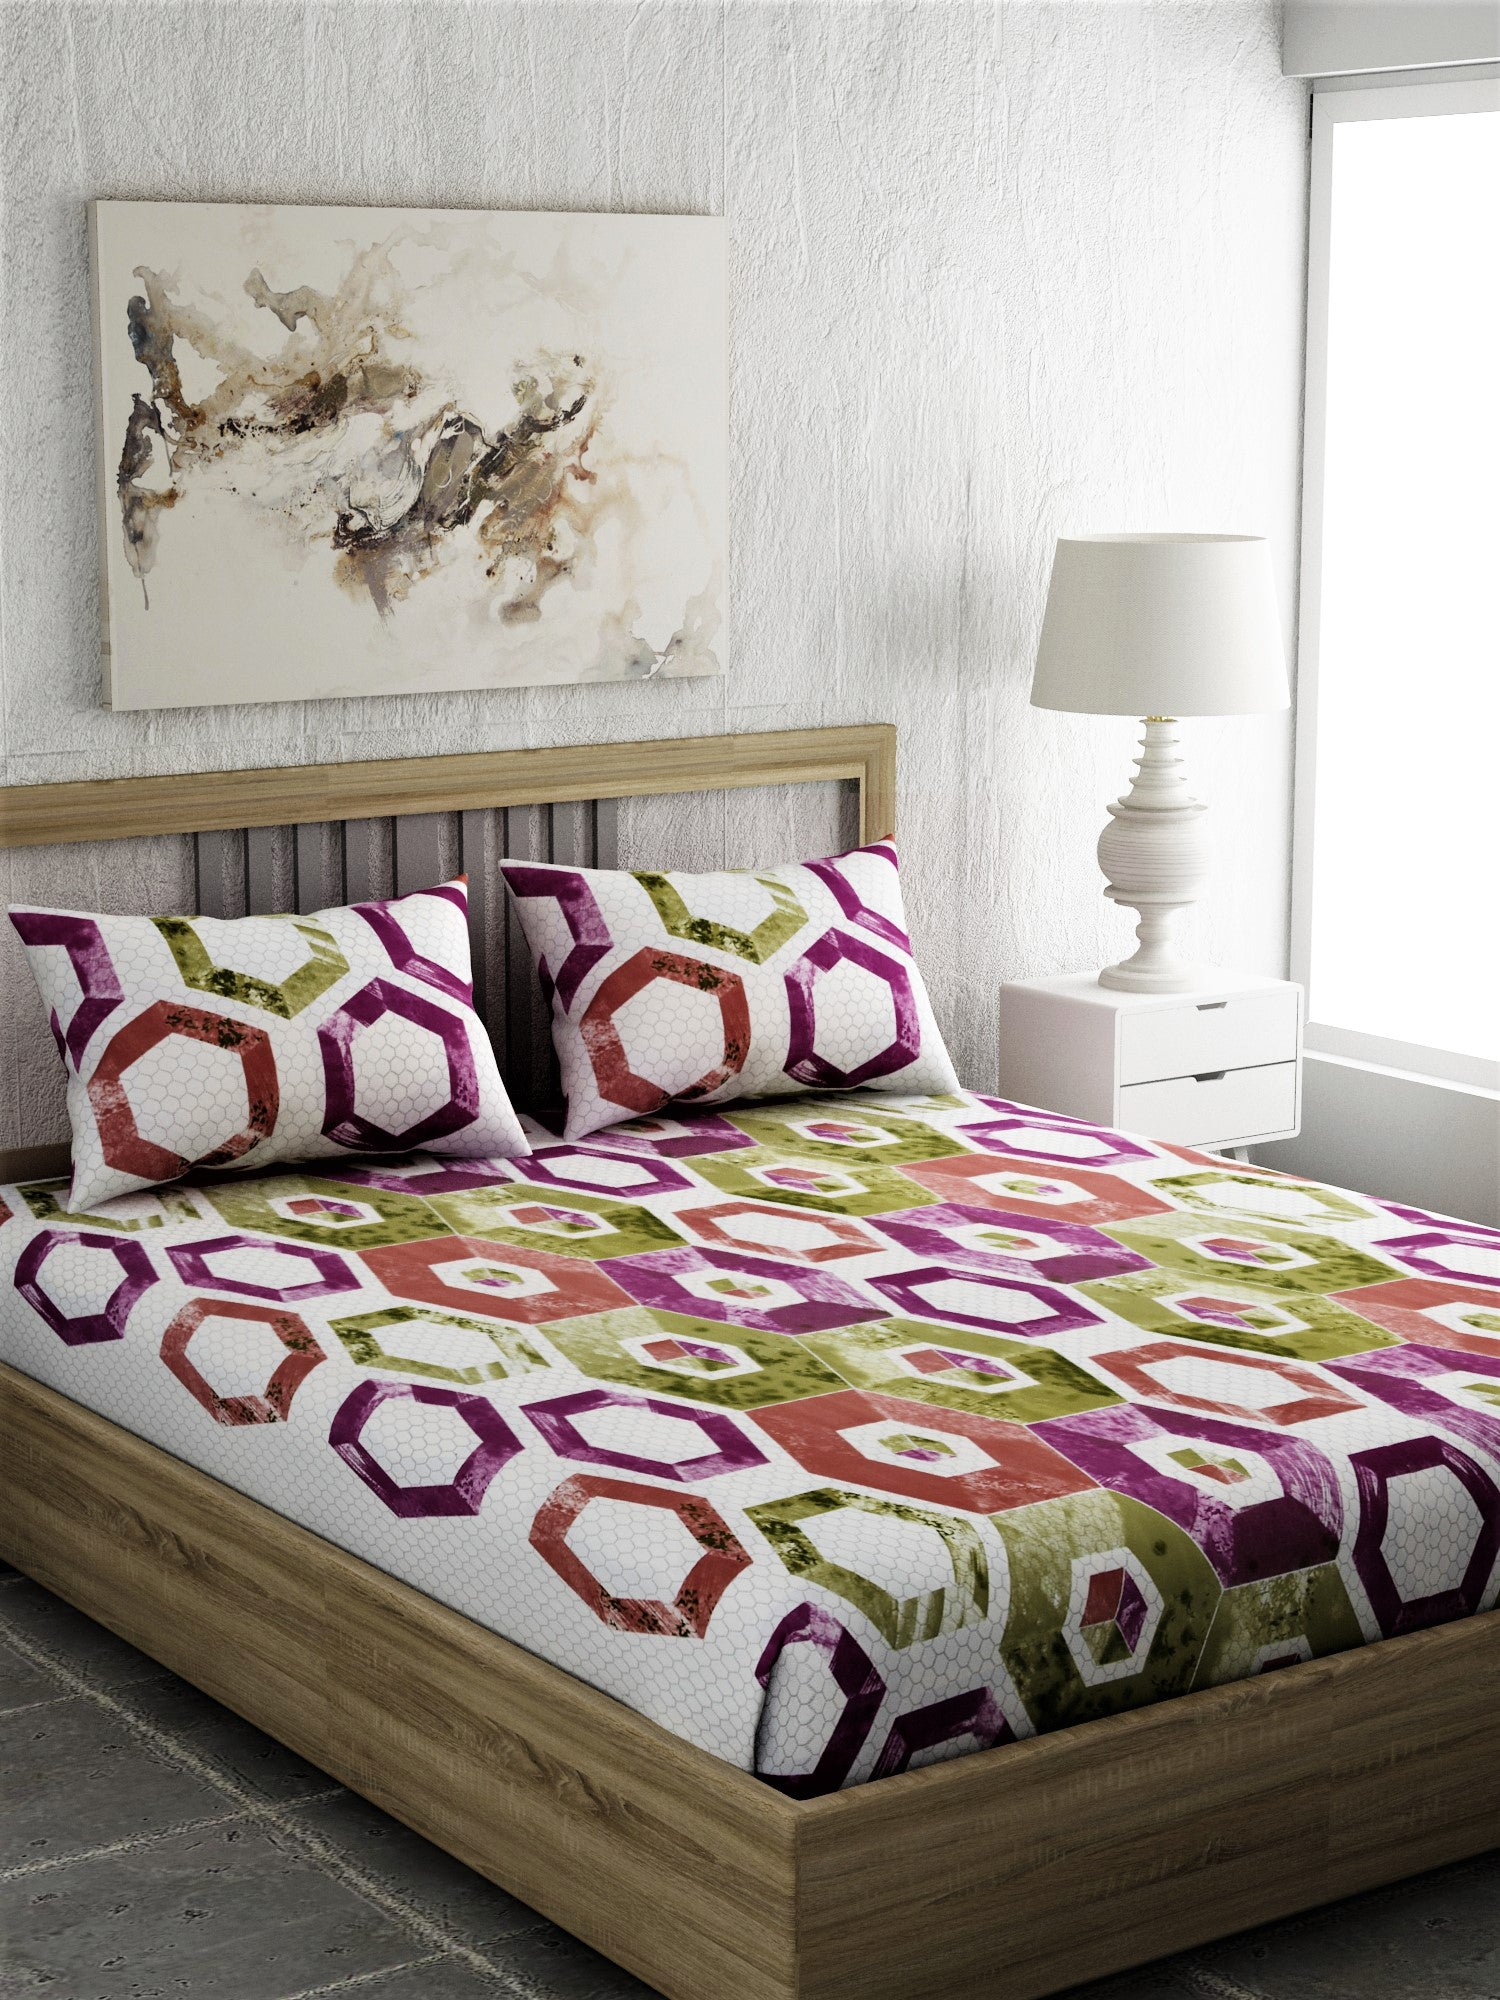 Super King 100% Cotton Bedsheet Set